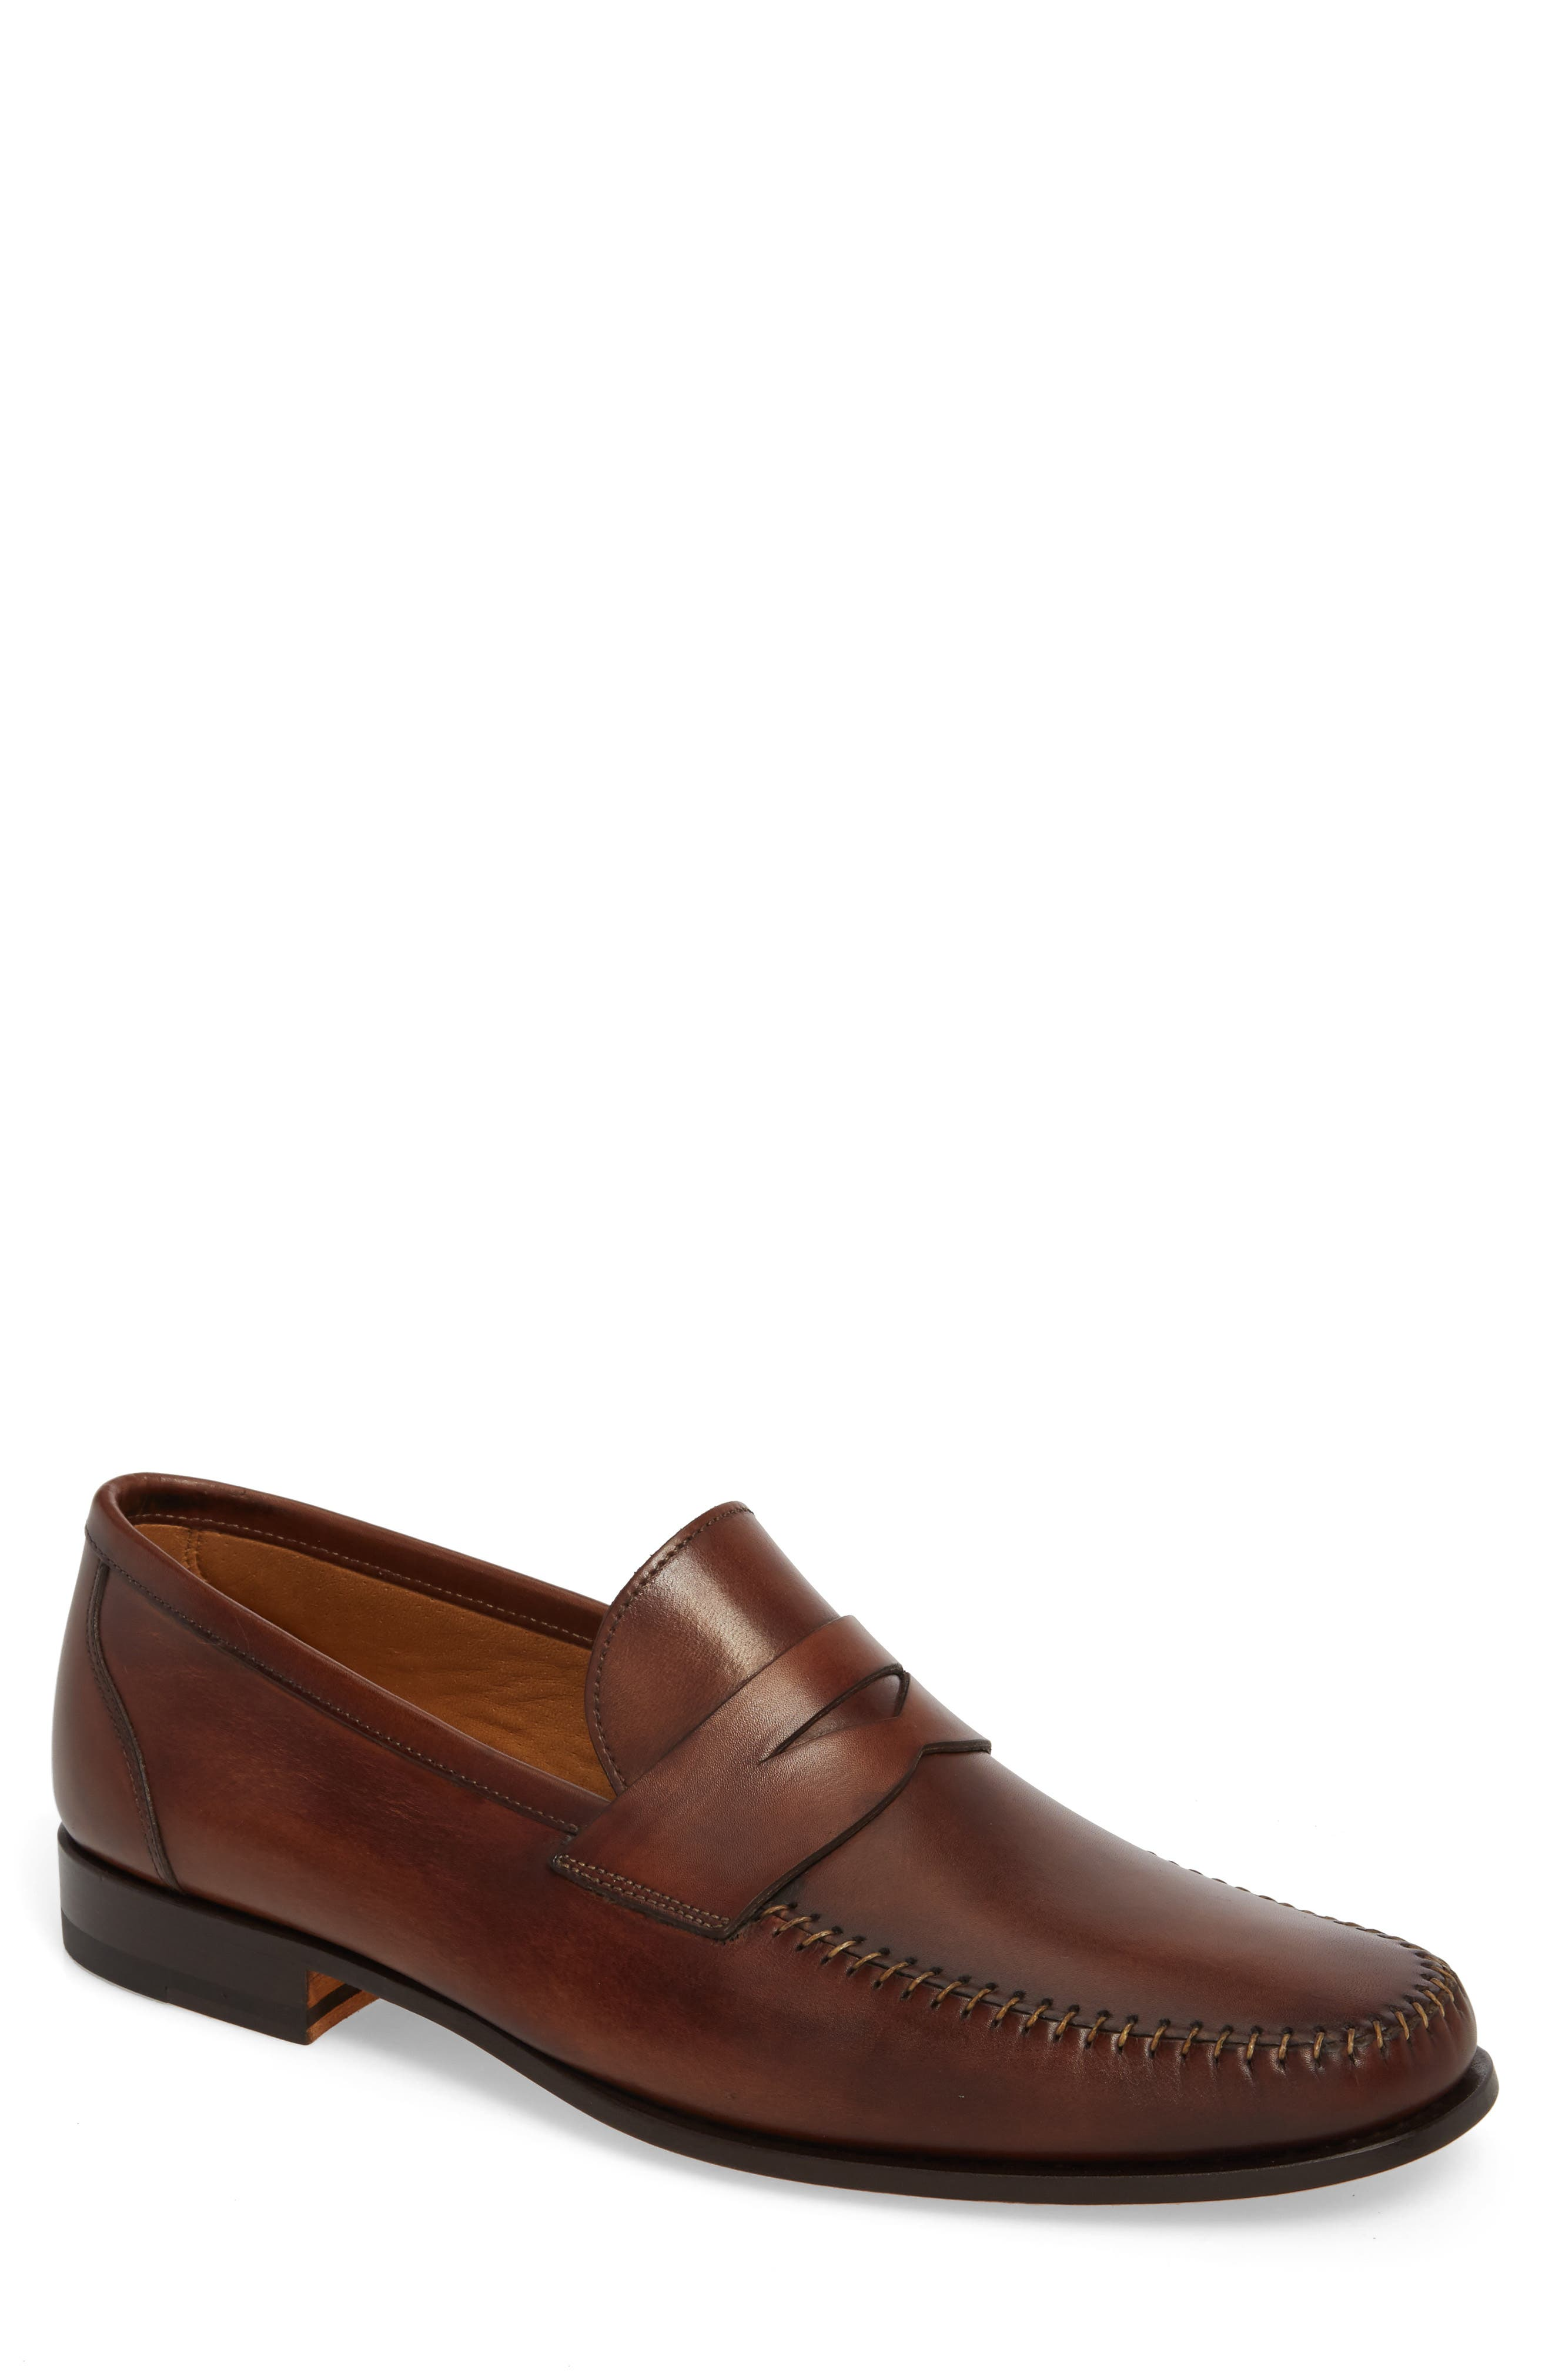 Ramos Moc Toe Penny Loafer,                         Main,                         color, Brown Leather